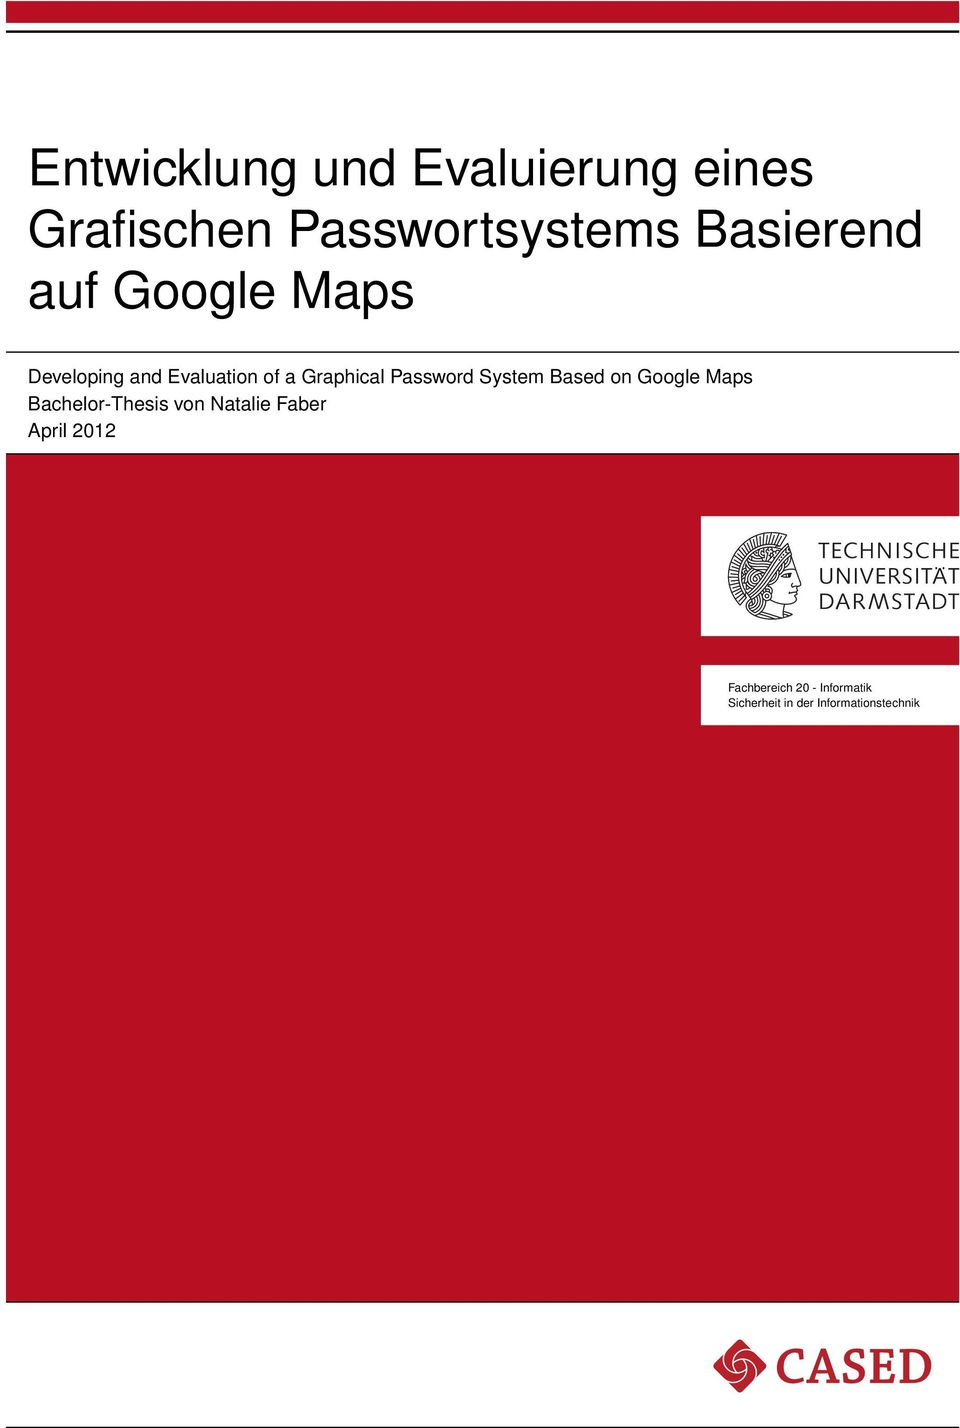 Password System Based on Google Maps Bachelor-Thesis von Natalie